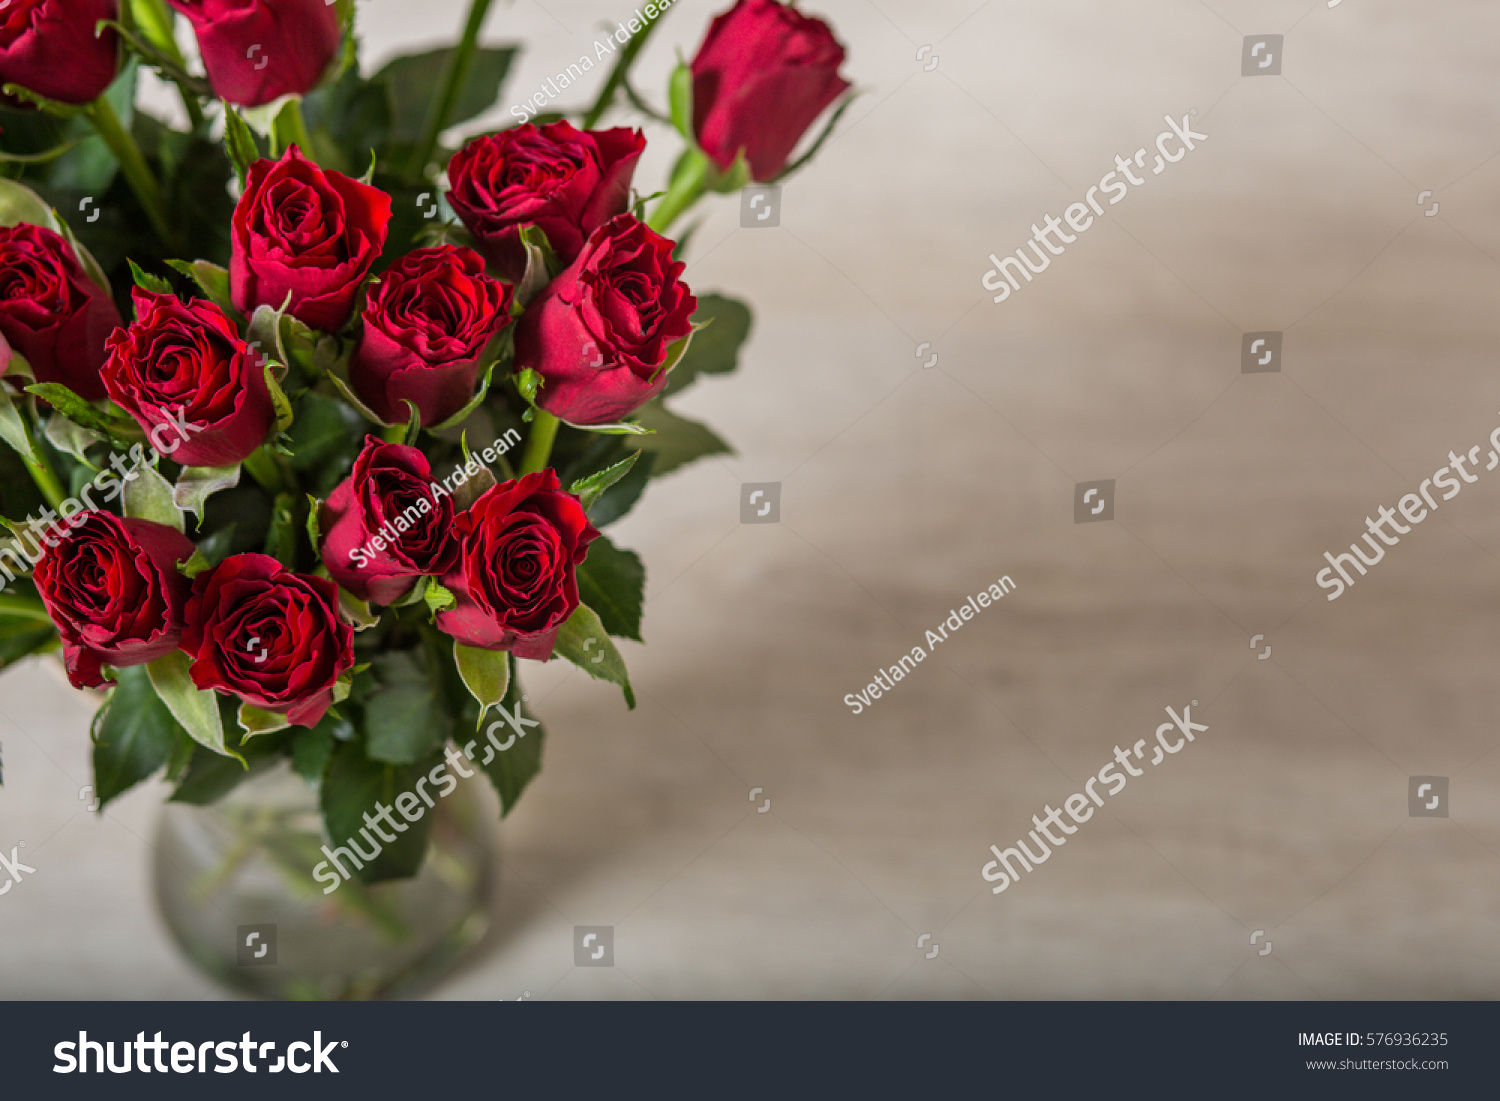 Top view of beautiful and delicate roses on wooden background ez top view of beautiful and delicate roses on wooden background ez canvas izmirmasajfo